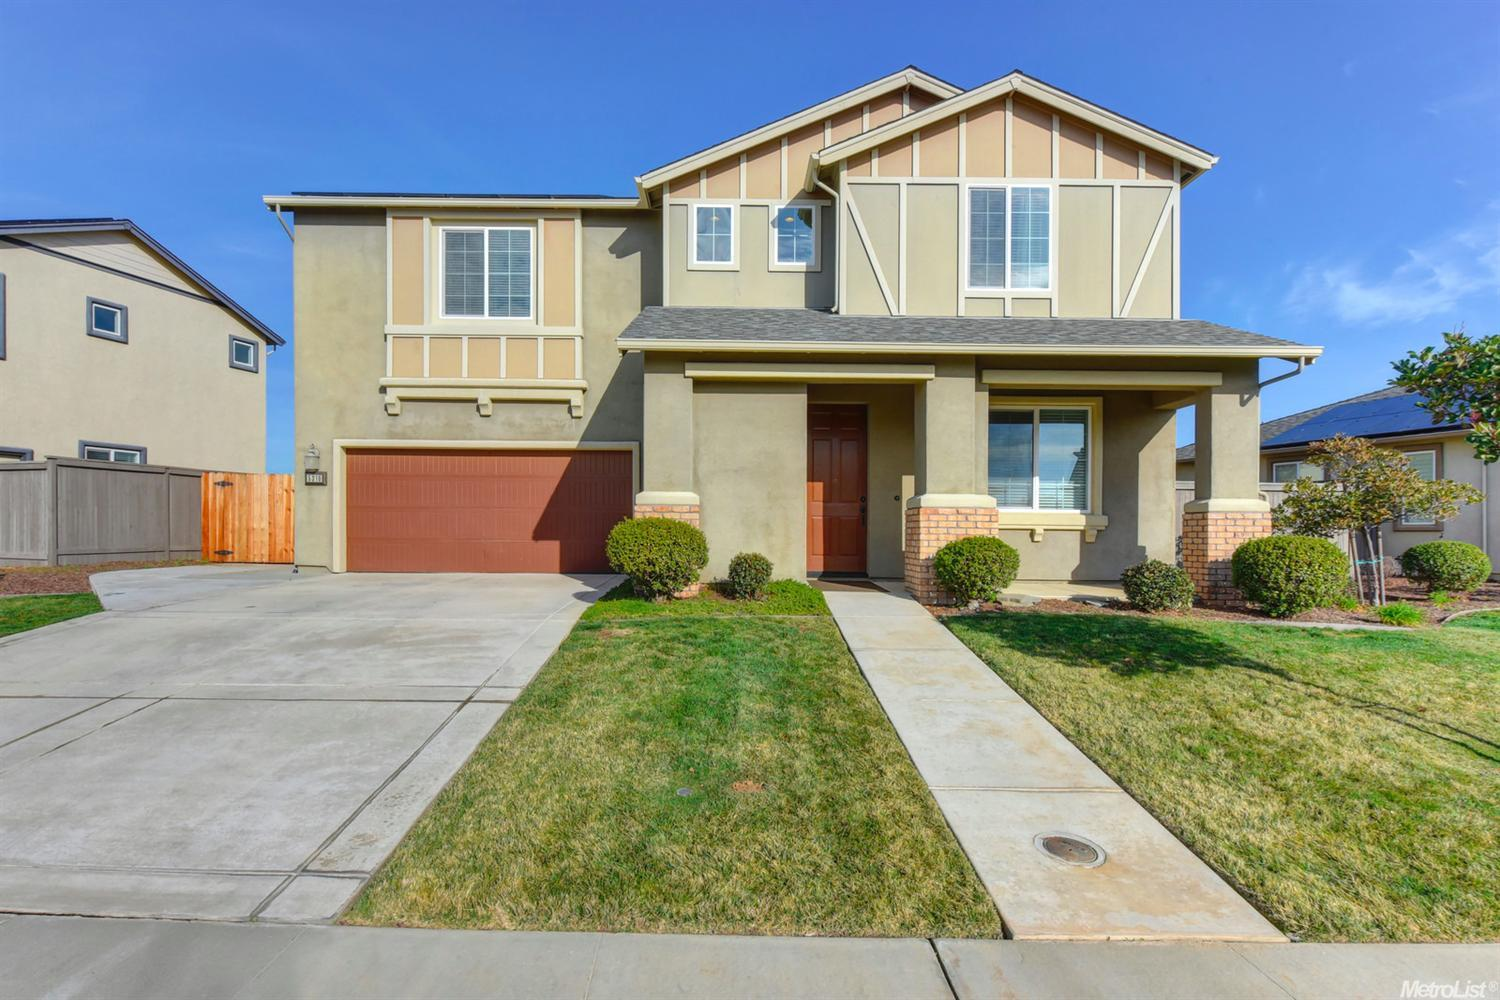 5310 Dusty Rose Way, Rancho Cordova, CA 95742